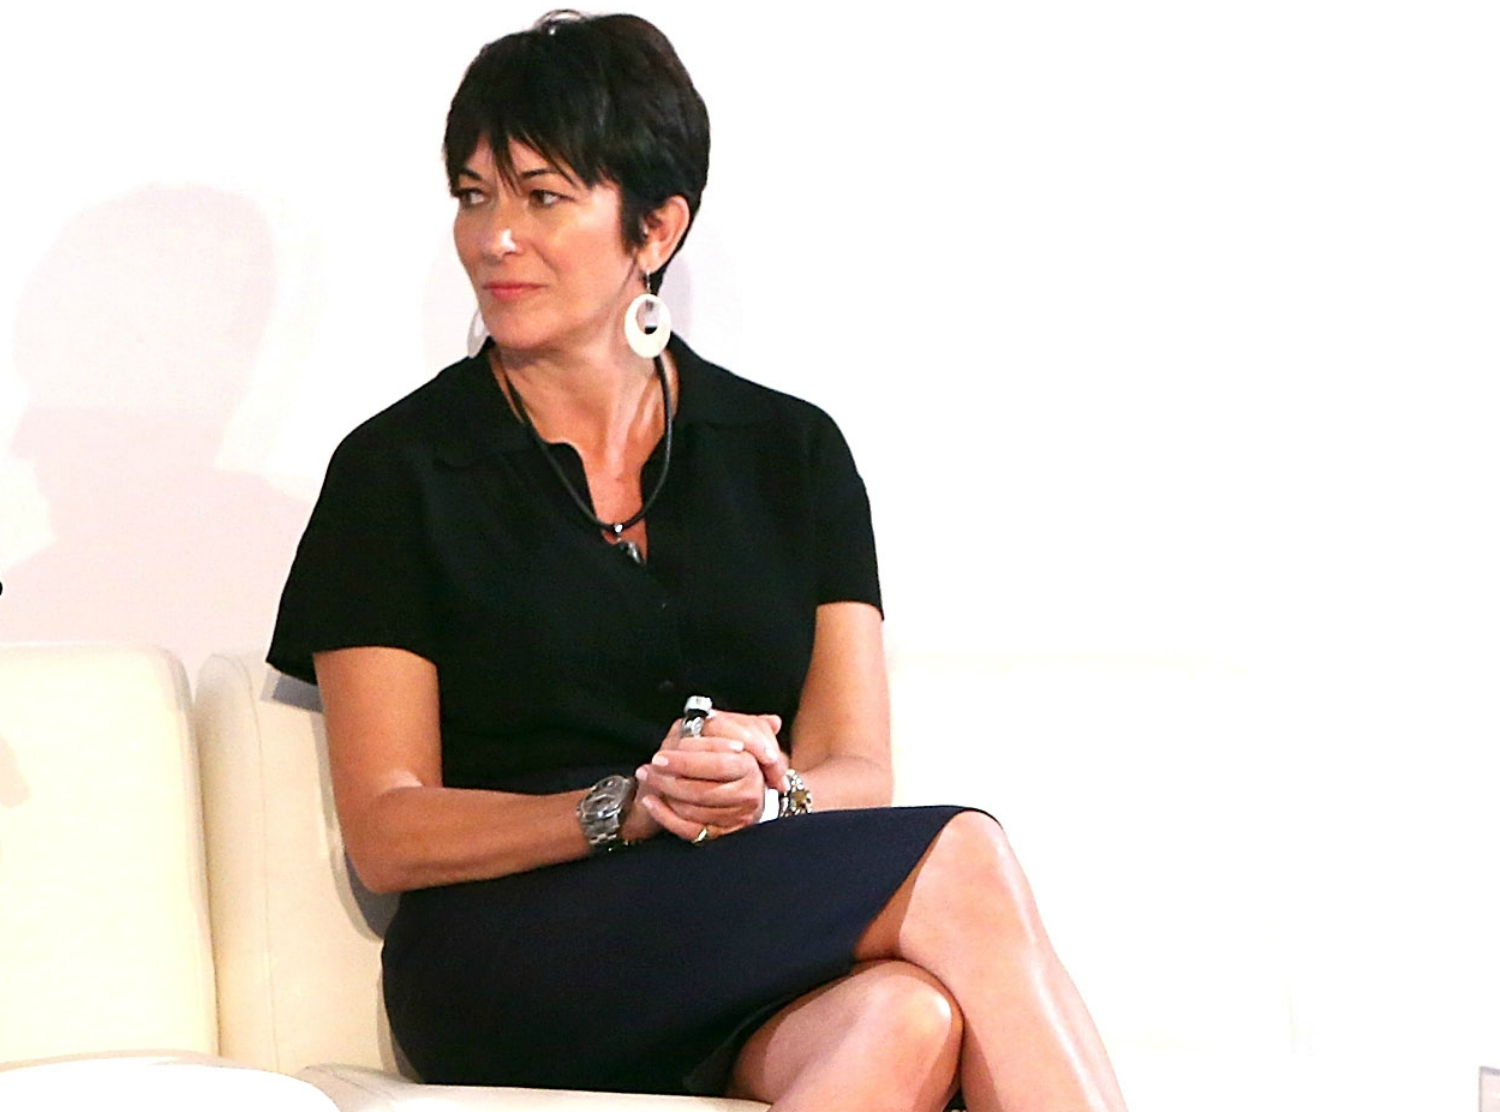 Alleged Epstein Recruiter Ghislaine Maxwell Arrested For Almost Unspeakable Crimes